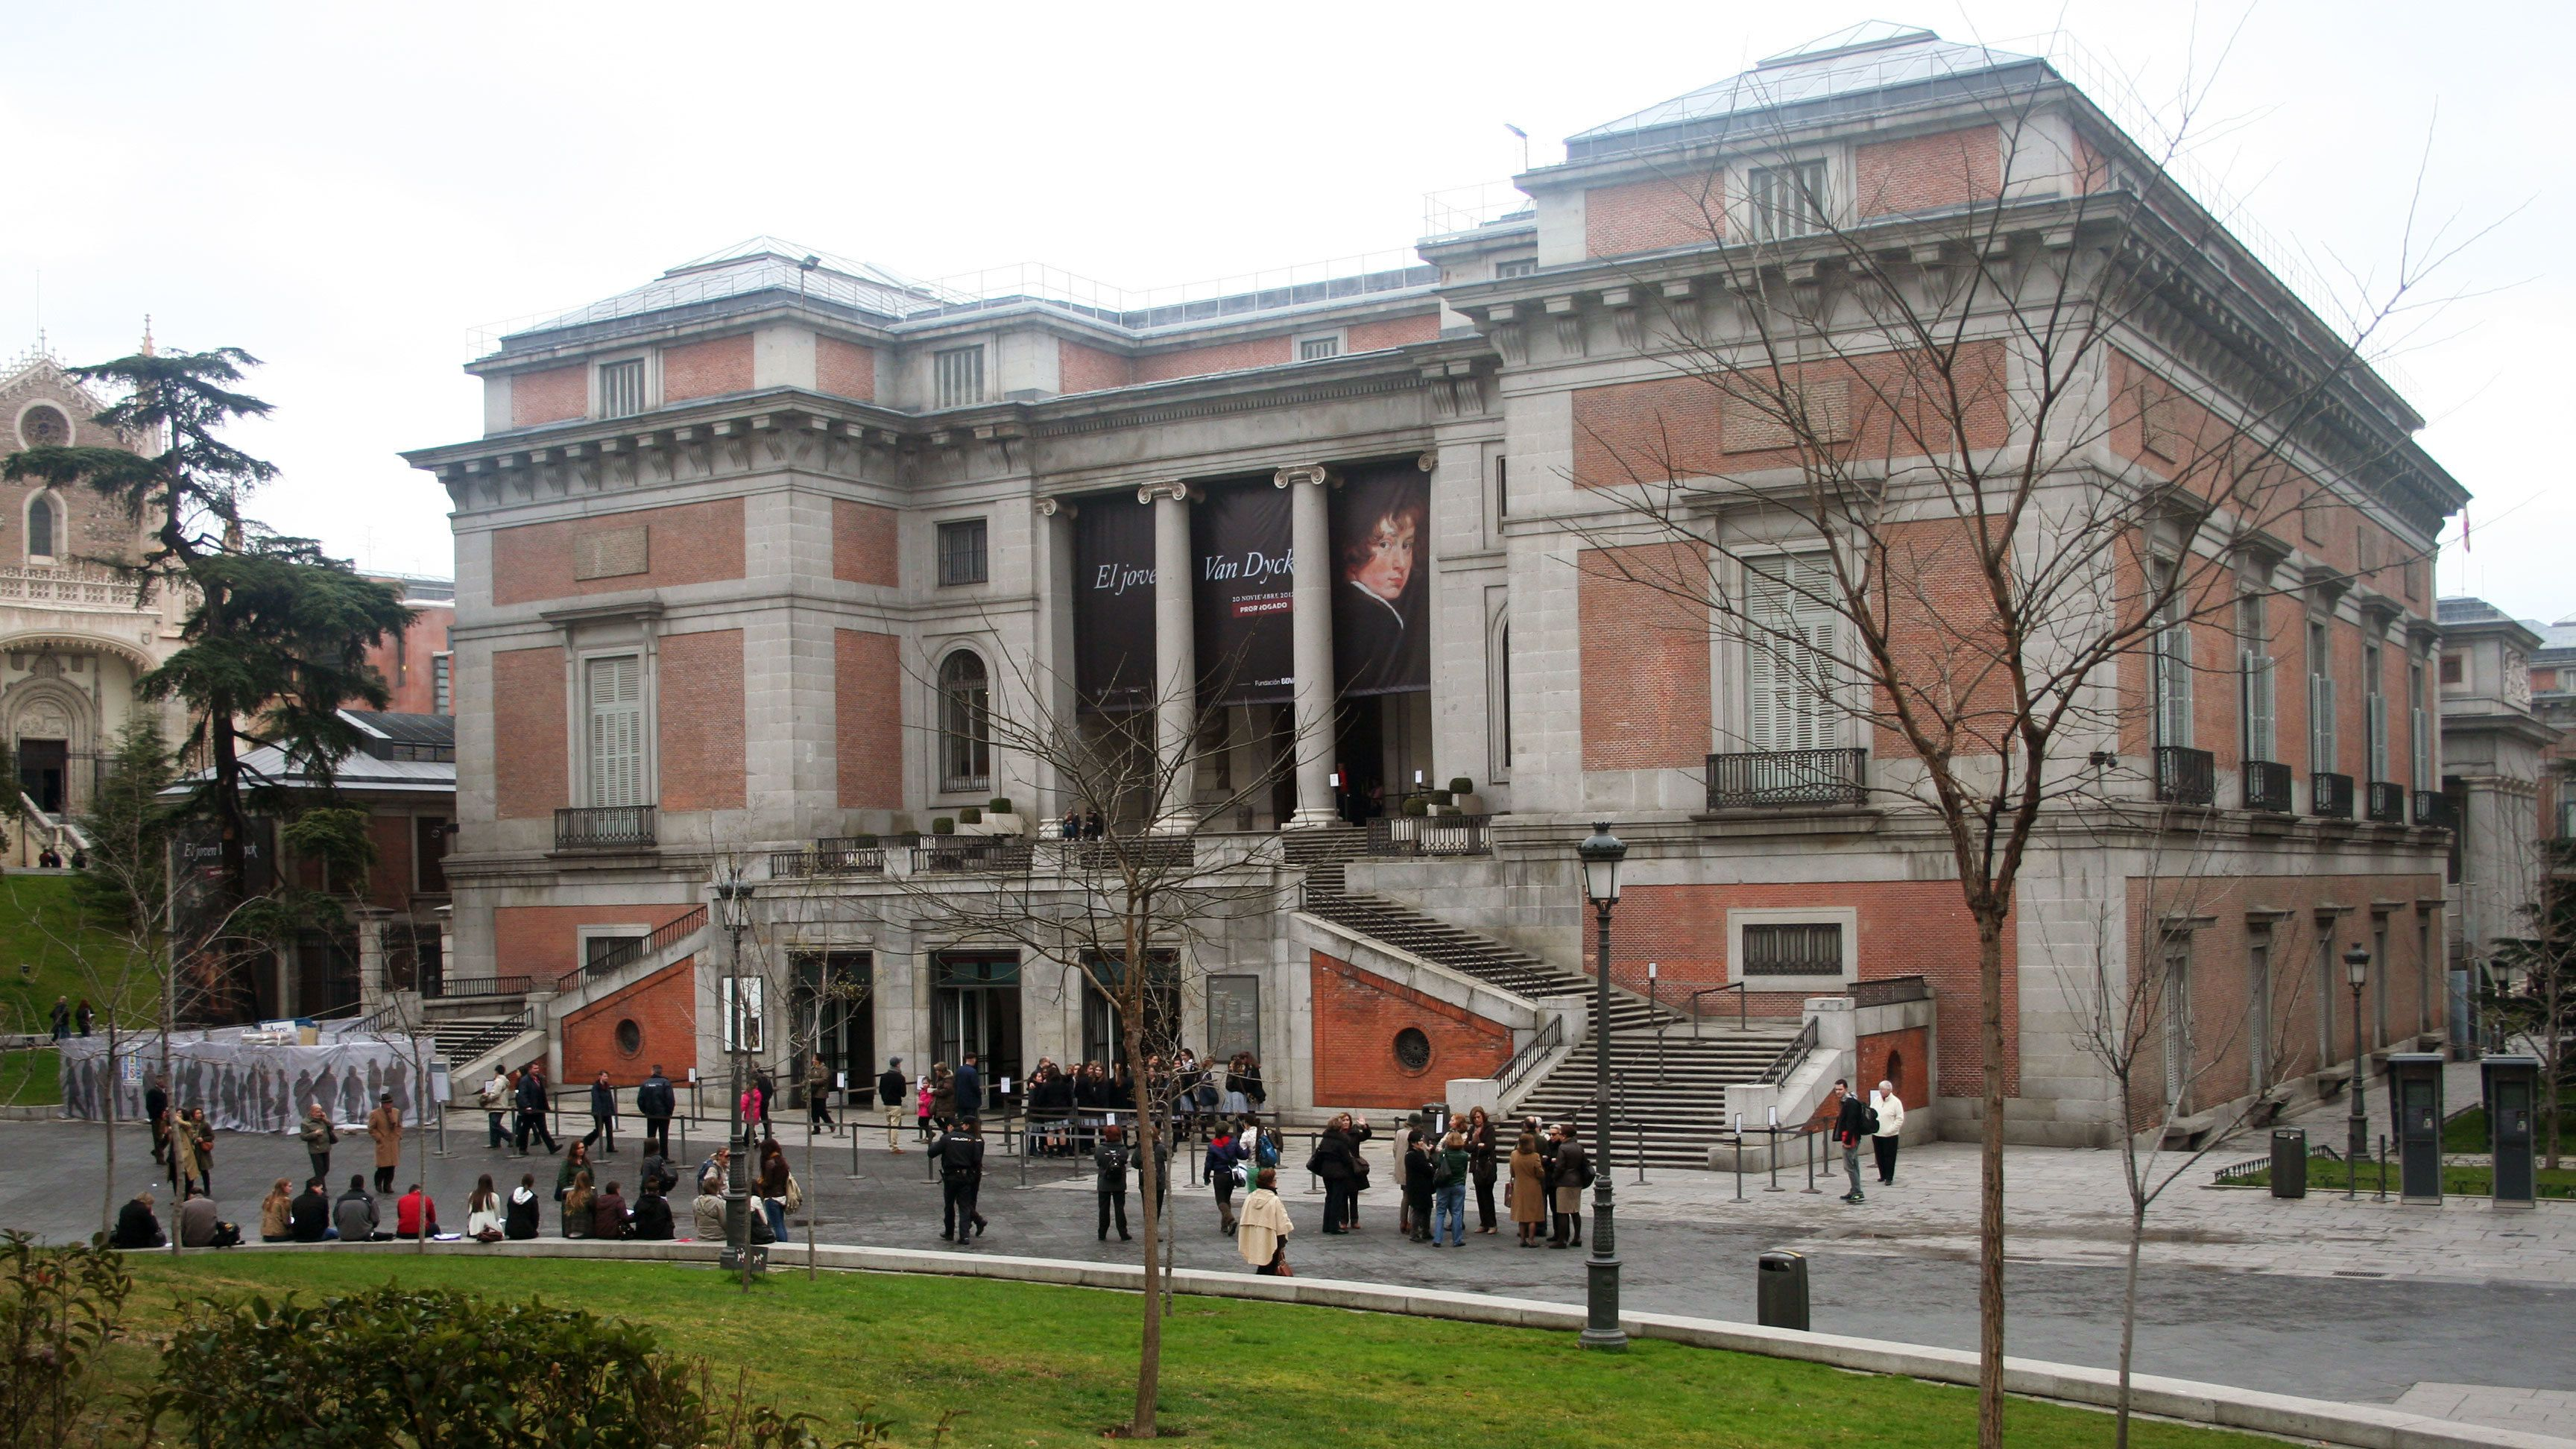 Front view of the Museo del Prado the main Spanish national art museum in Madrid